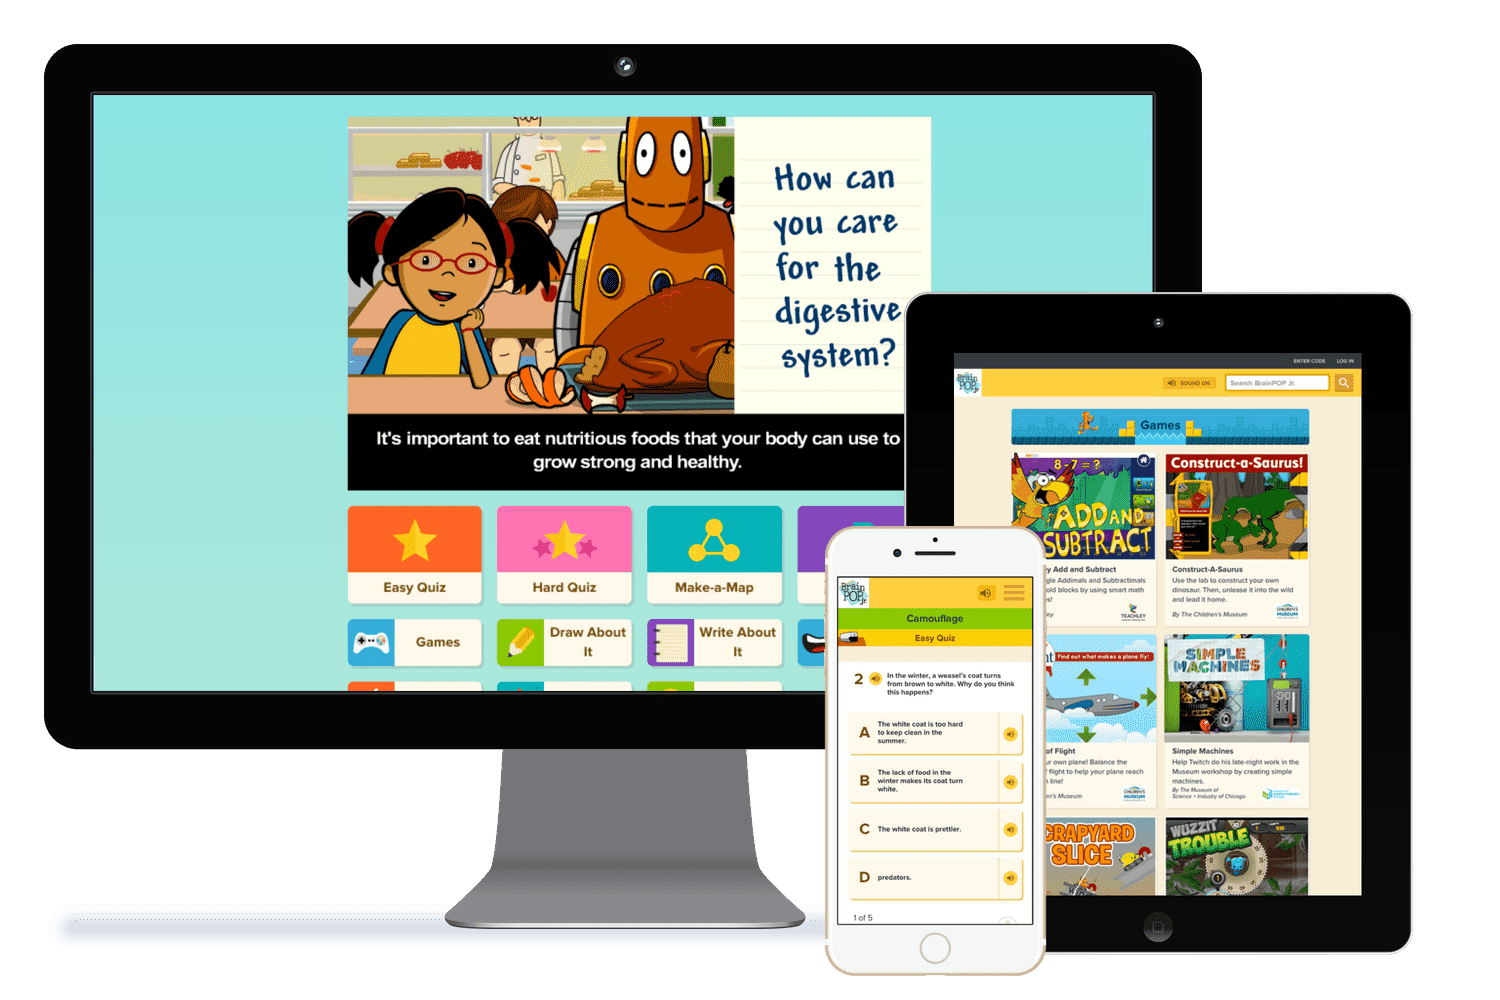 The BrainPOP family - Many of our primary and elementary customers reap the benefits using both BrainPOP Jr. + BrainPOP at school and home*.